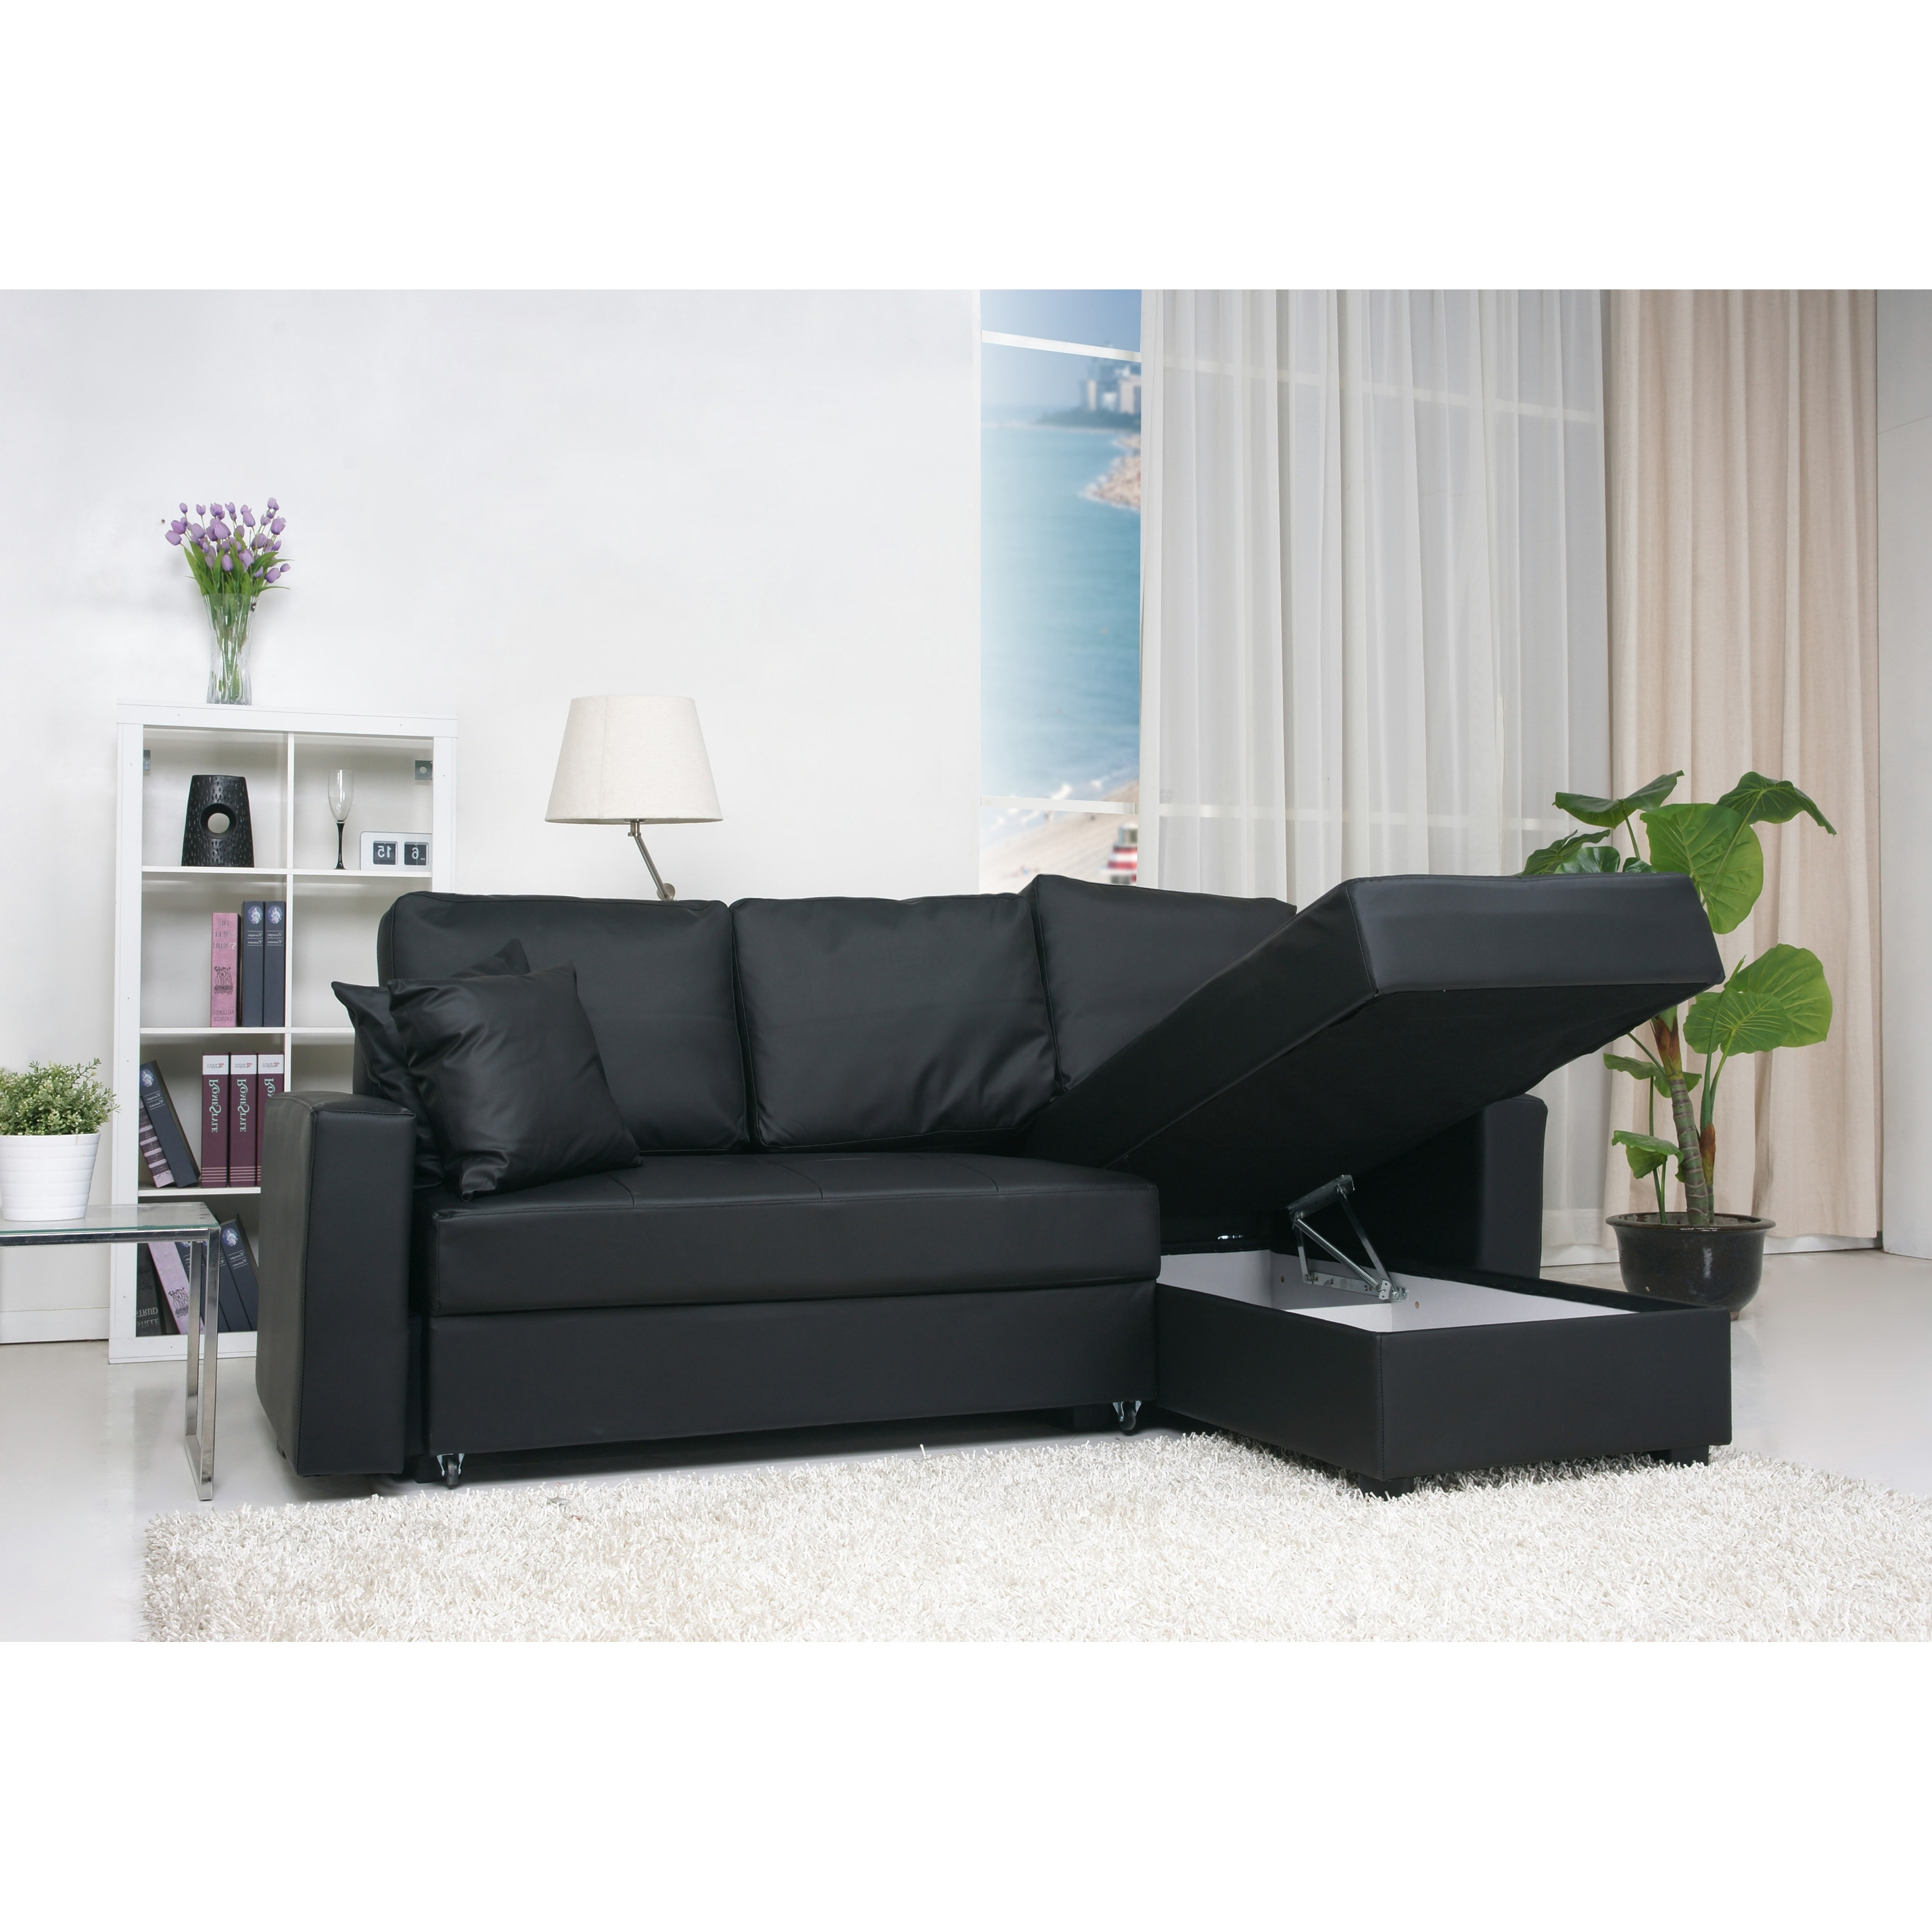 Small Spaces Pertaining To Popular Sectional Sofas At Ebay (View 8 of 20)